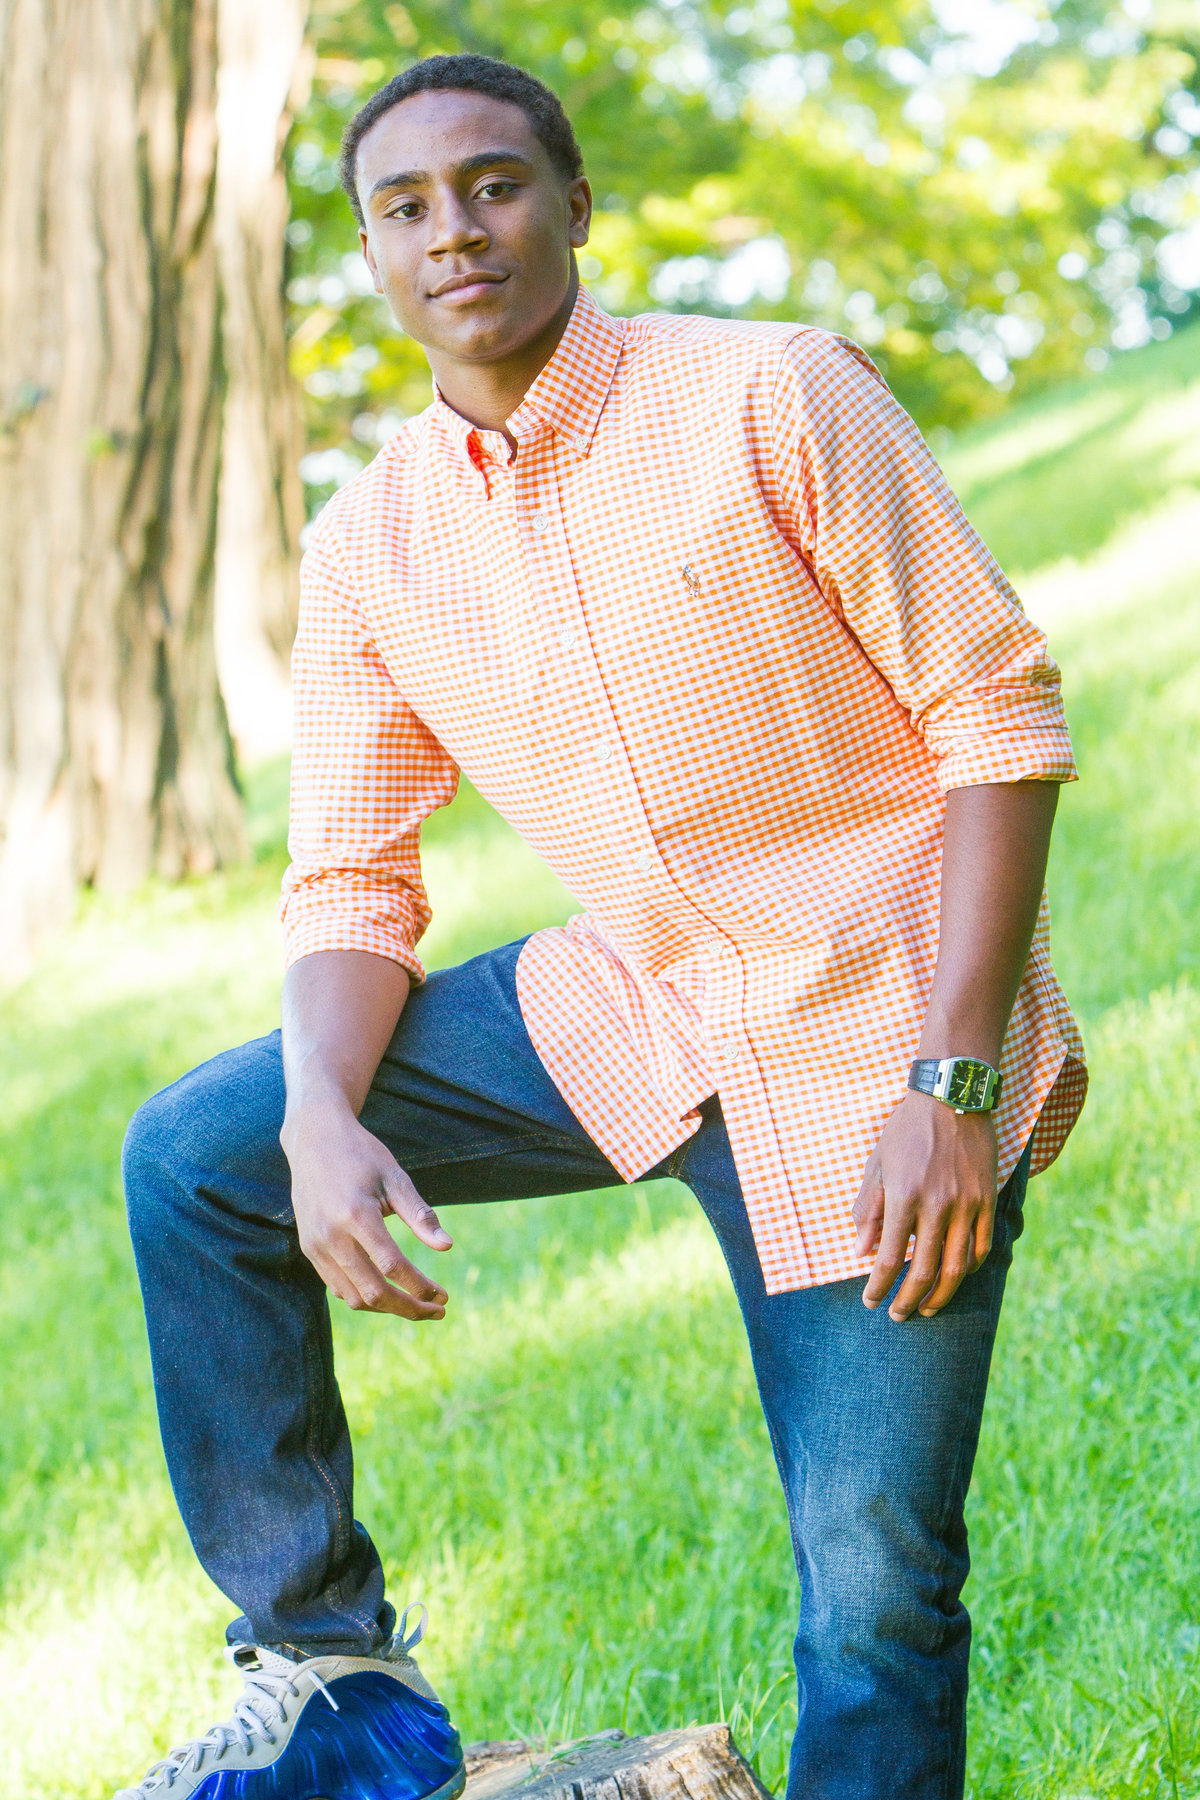 Senior portrait orange shirt